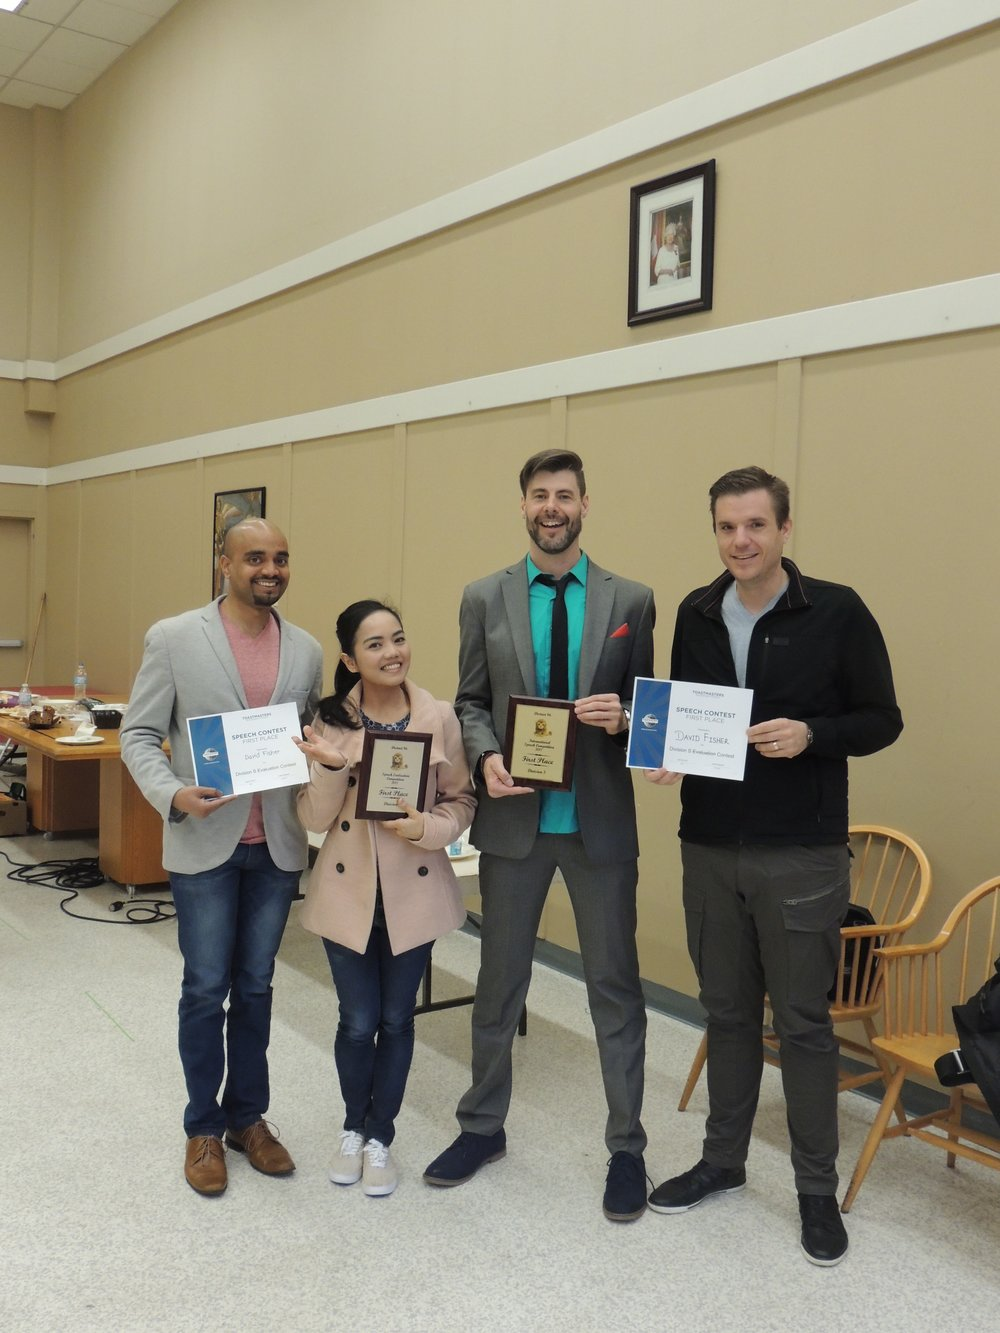 Double Win - Toastmasters Division Winner in both the International Speech Contest and the Evaluation Contest